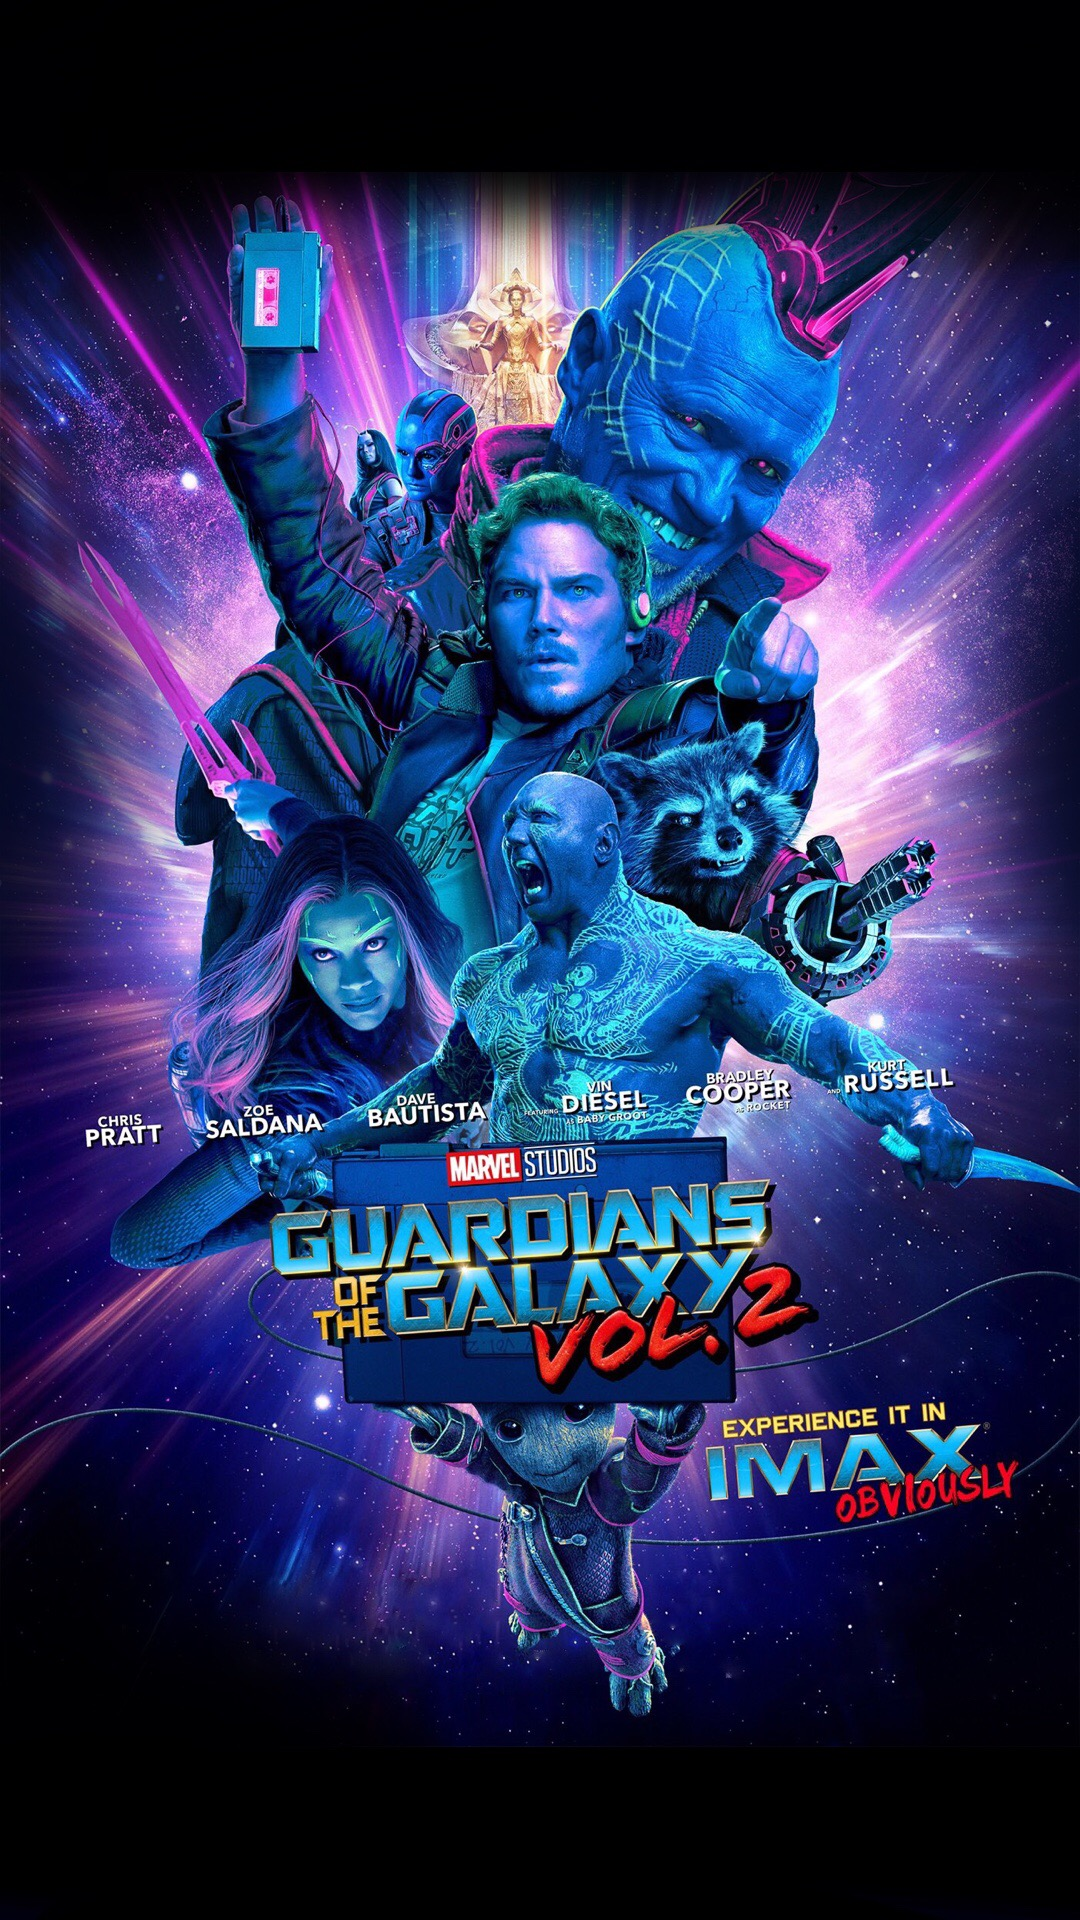 Free Download Guardians Of The Galaxy Vol 2 Wallpapers 1080x1920